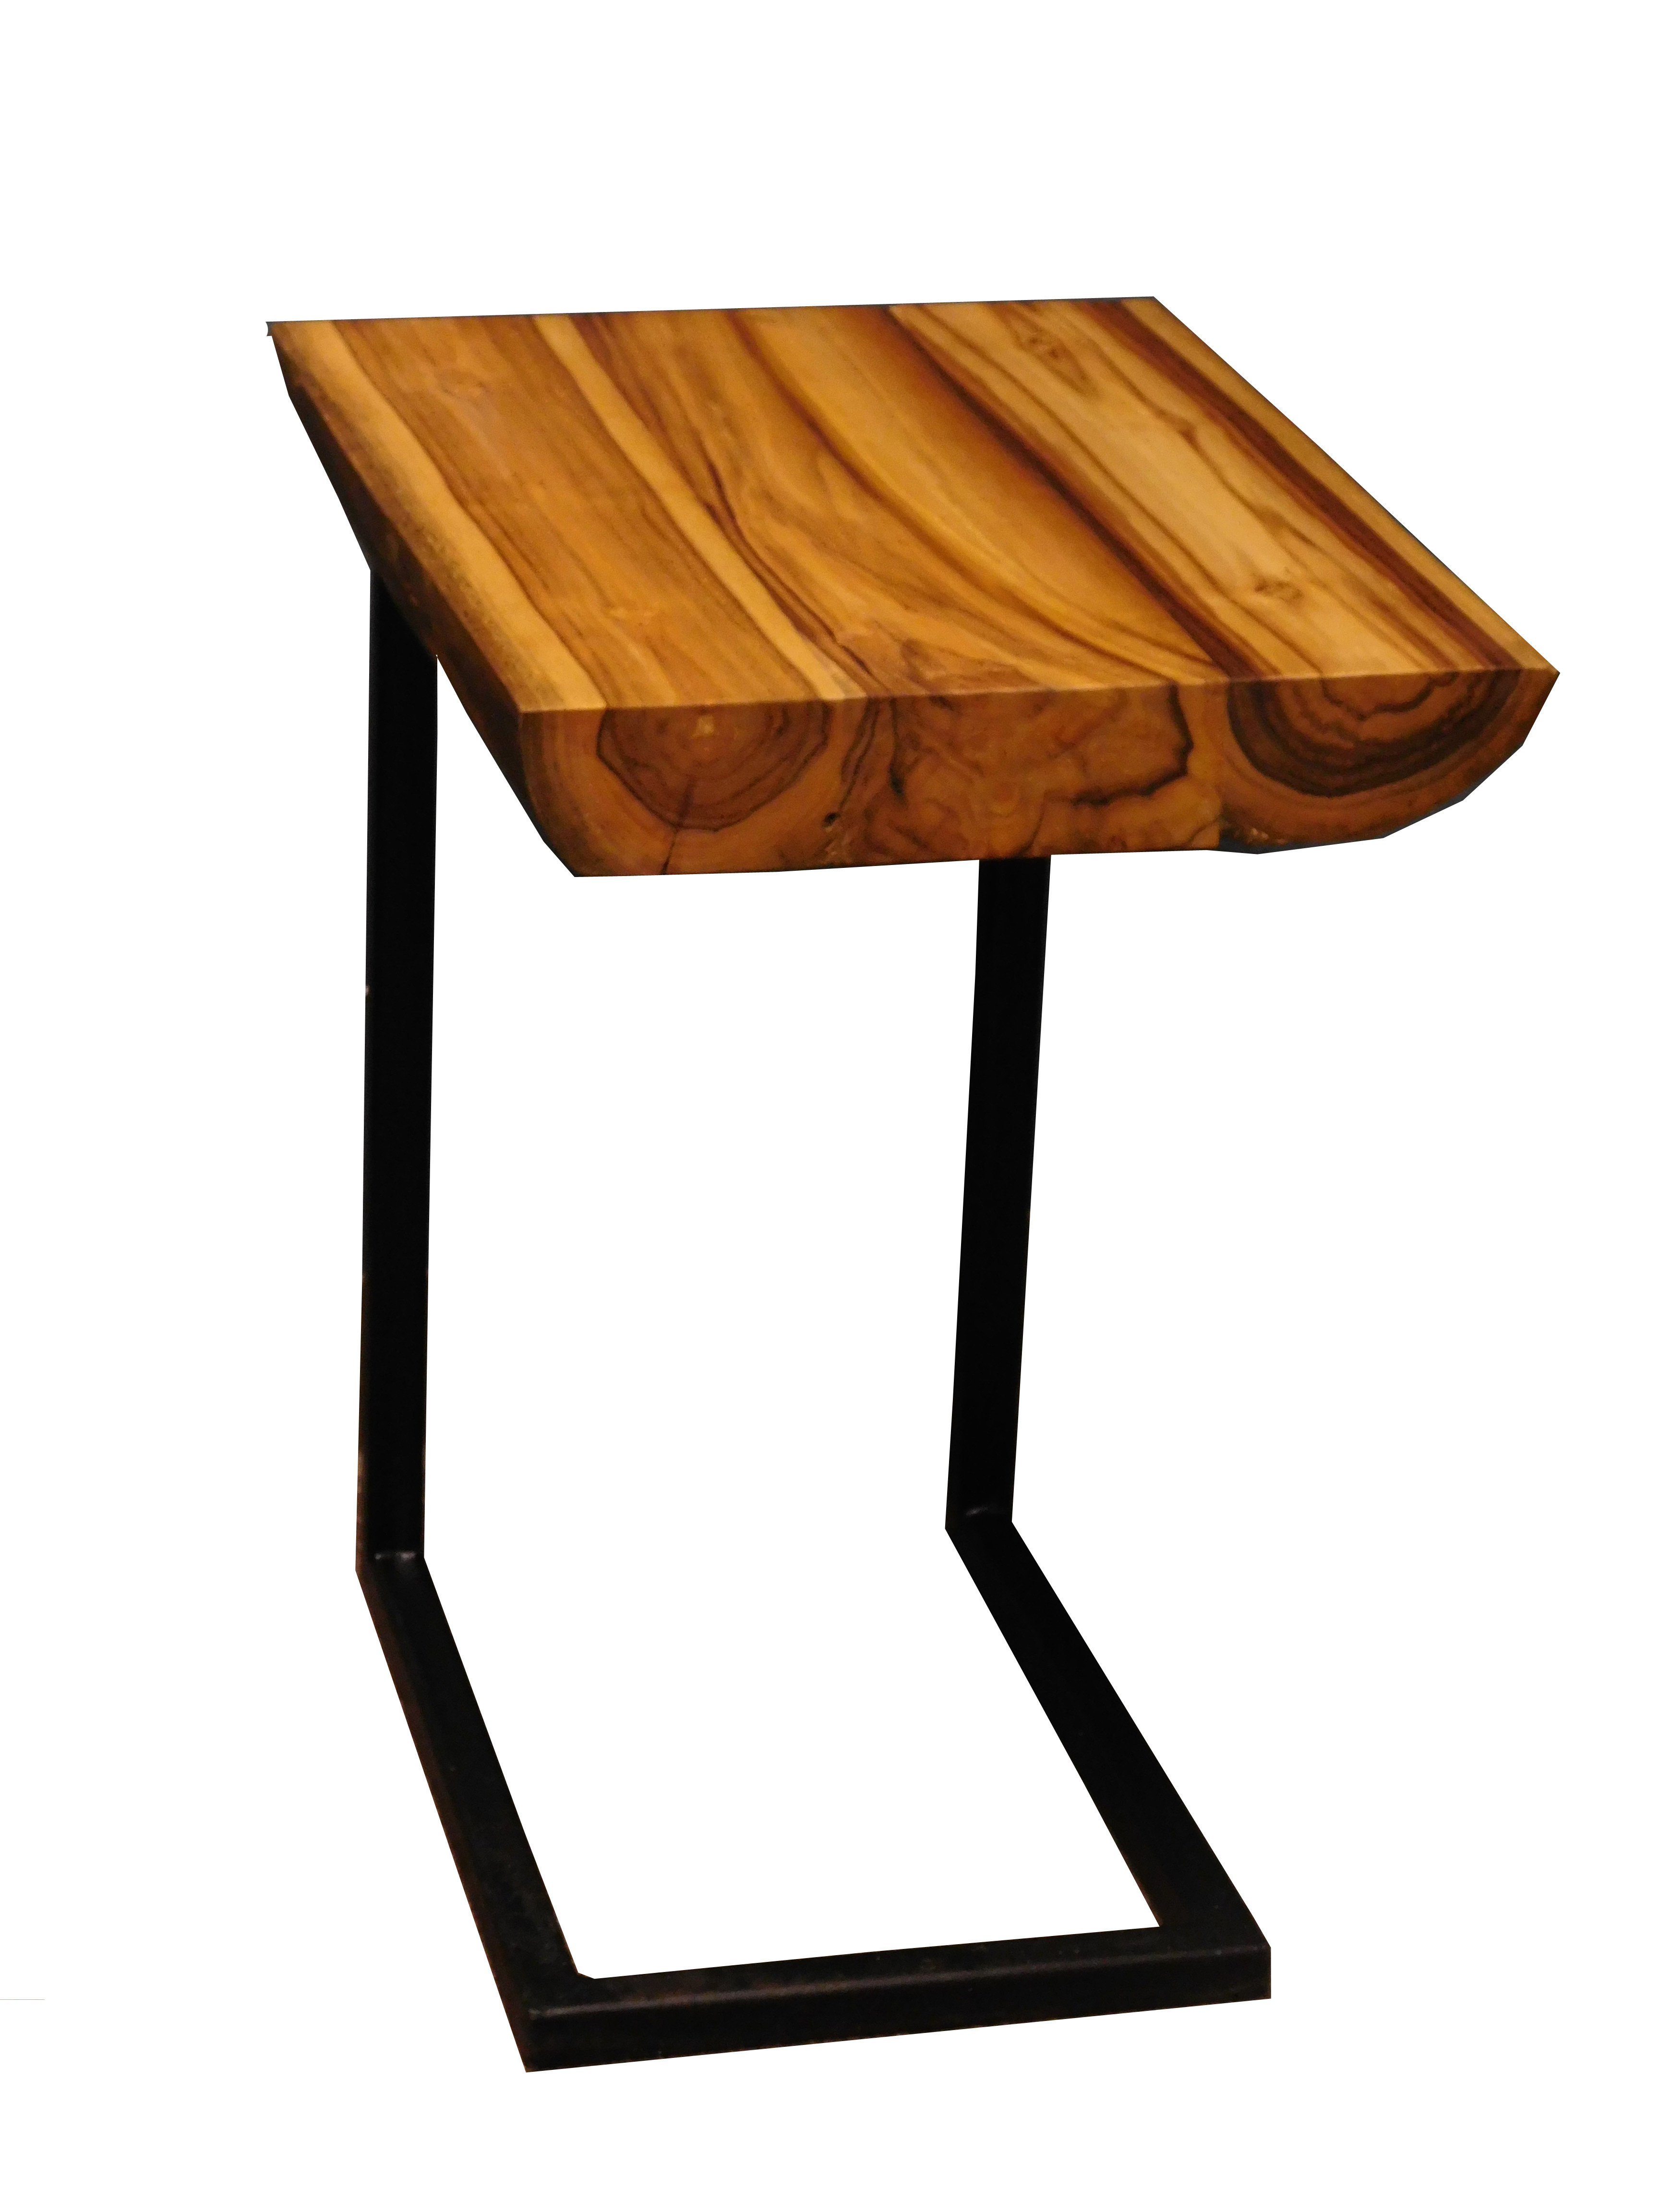 union rustic labarge teak end table reviews room essentials hairpin accent marble brass side ashley furniture bar baby white and wood pine legs mid century modern small entryway